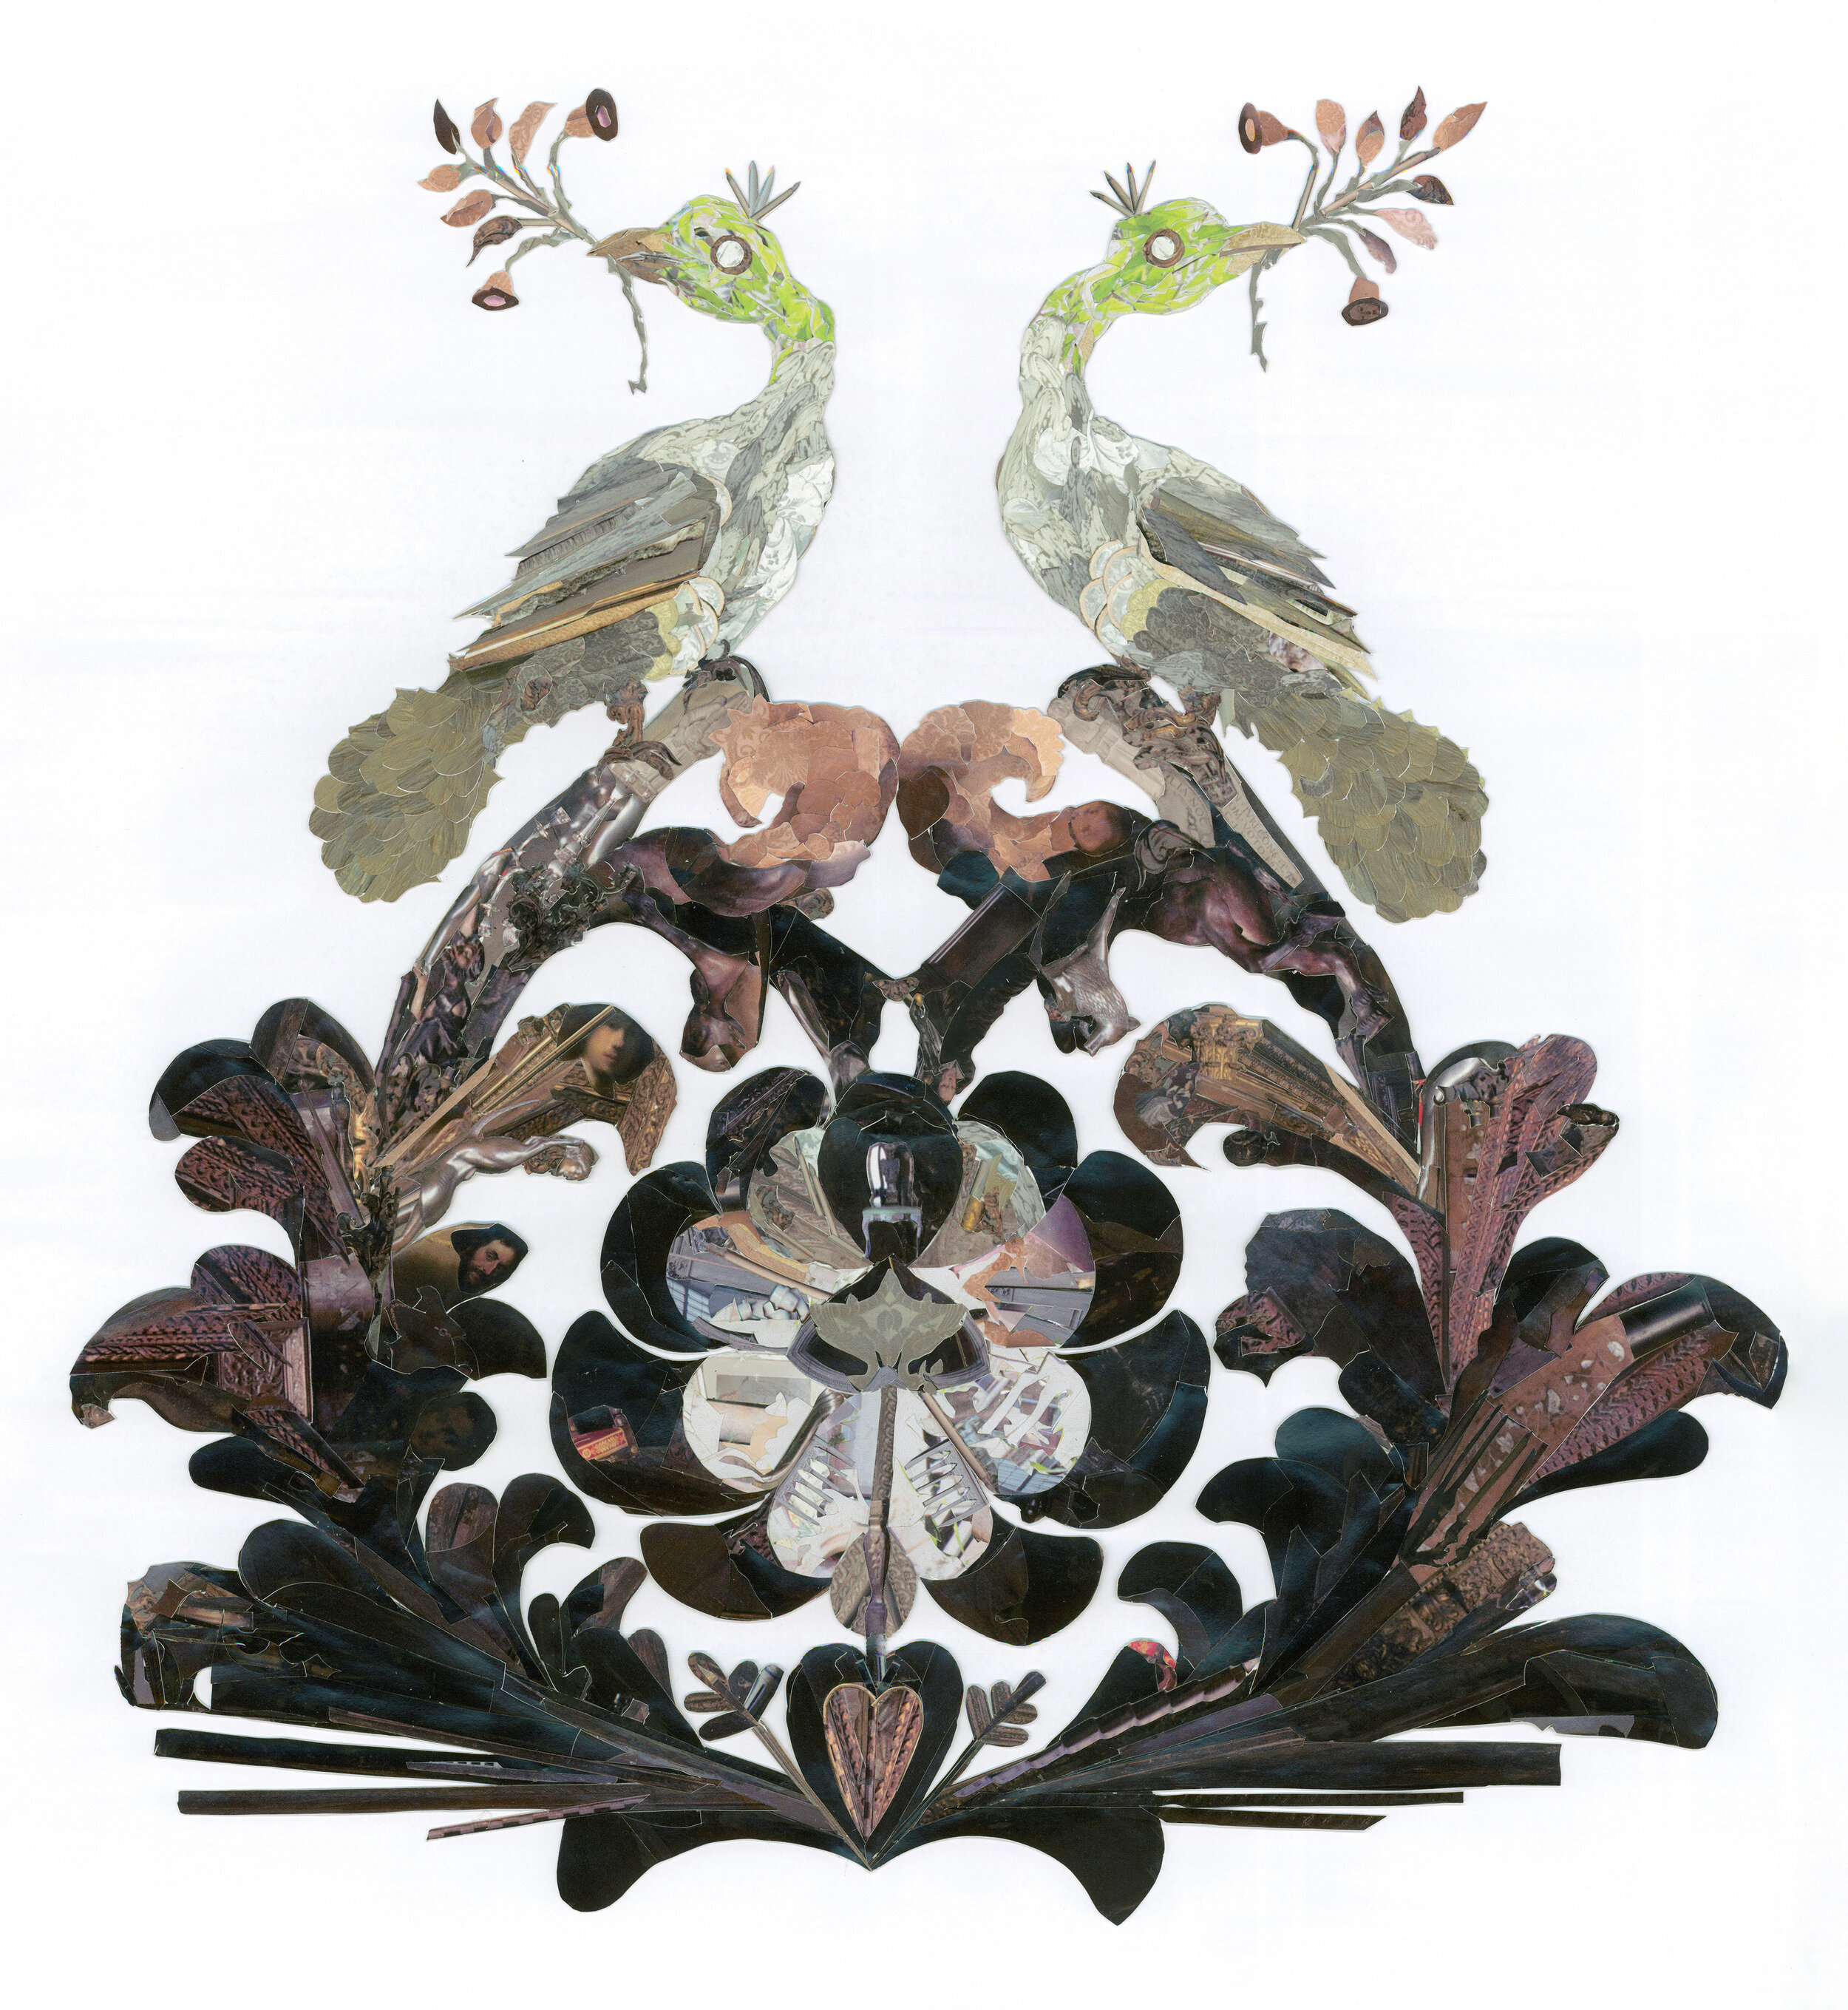 Elizabeth Alexander,  Rearranging the Gardner: The Dutch Room, Birds